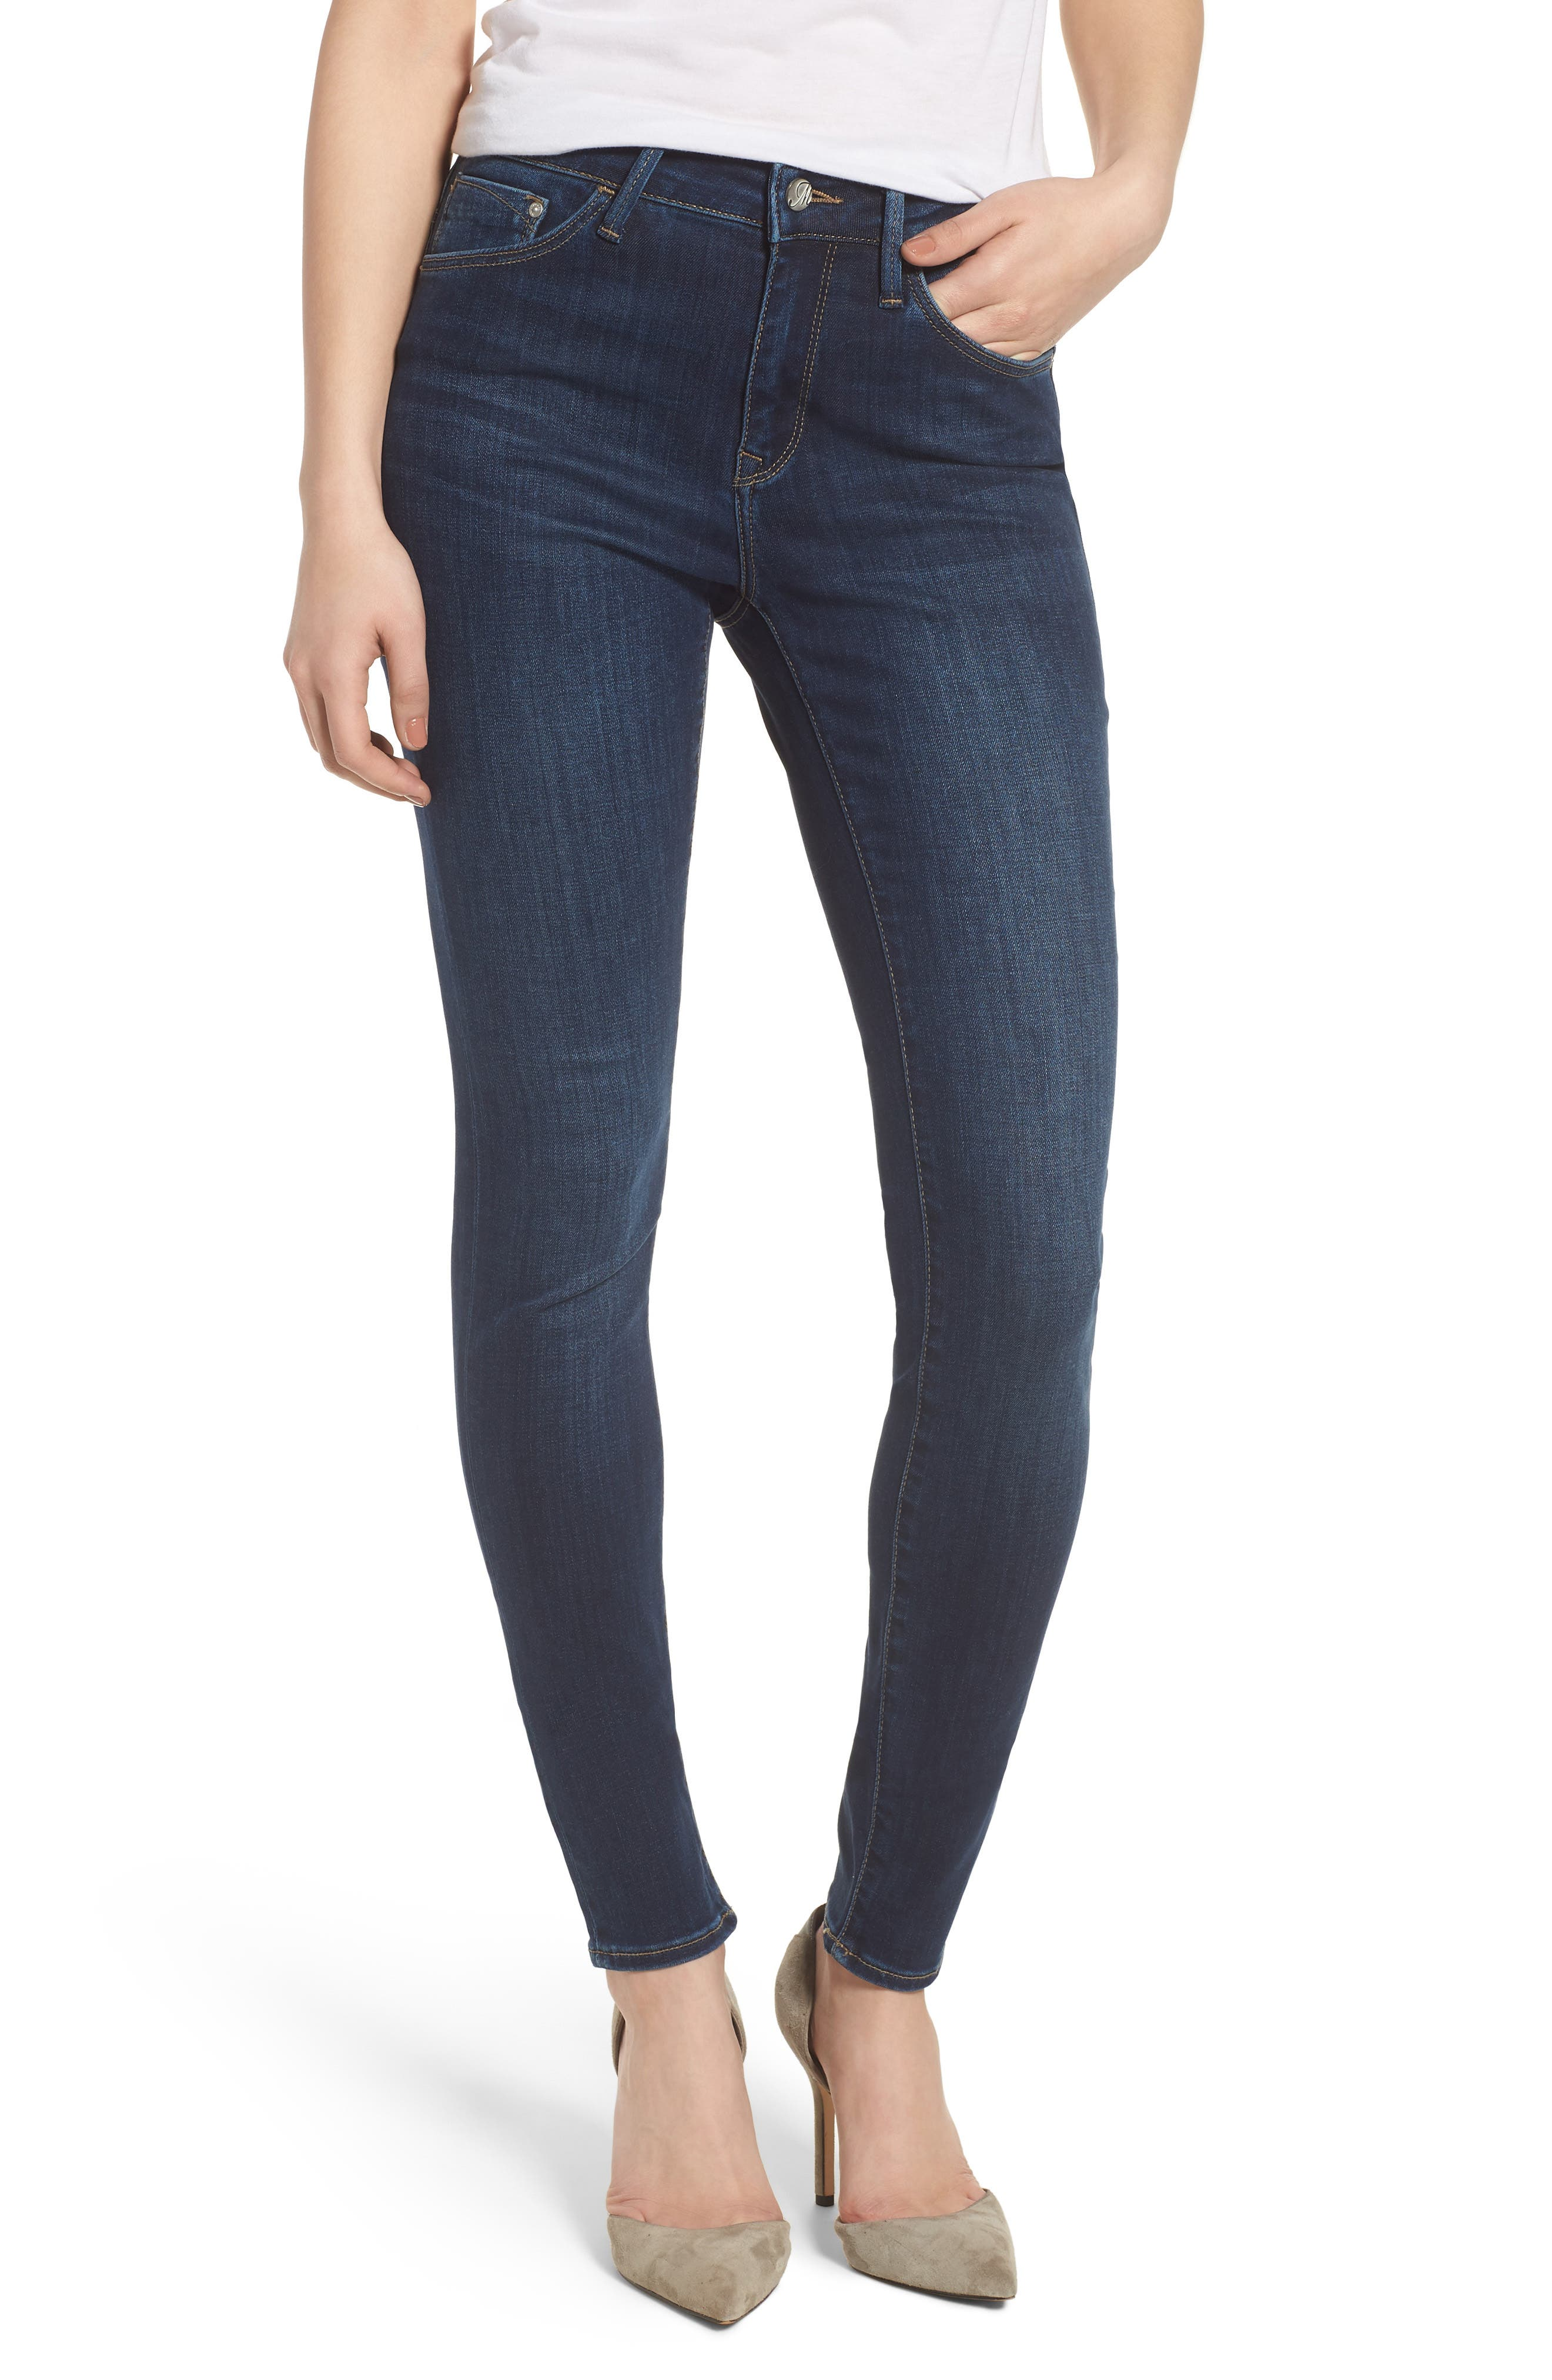 Alissa Skinny Jeans,                             Main thumbnail 1, color,                             400